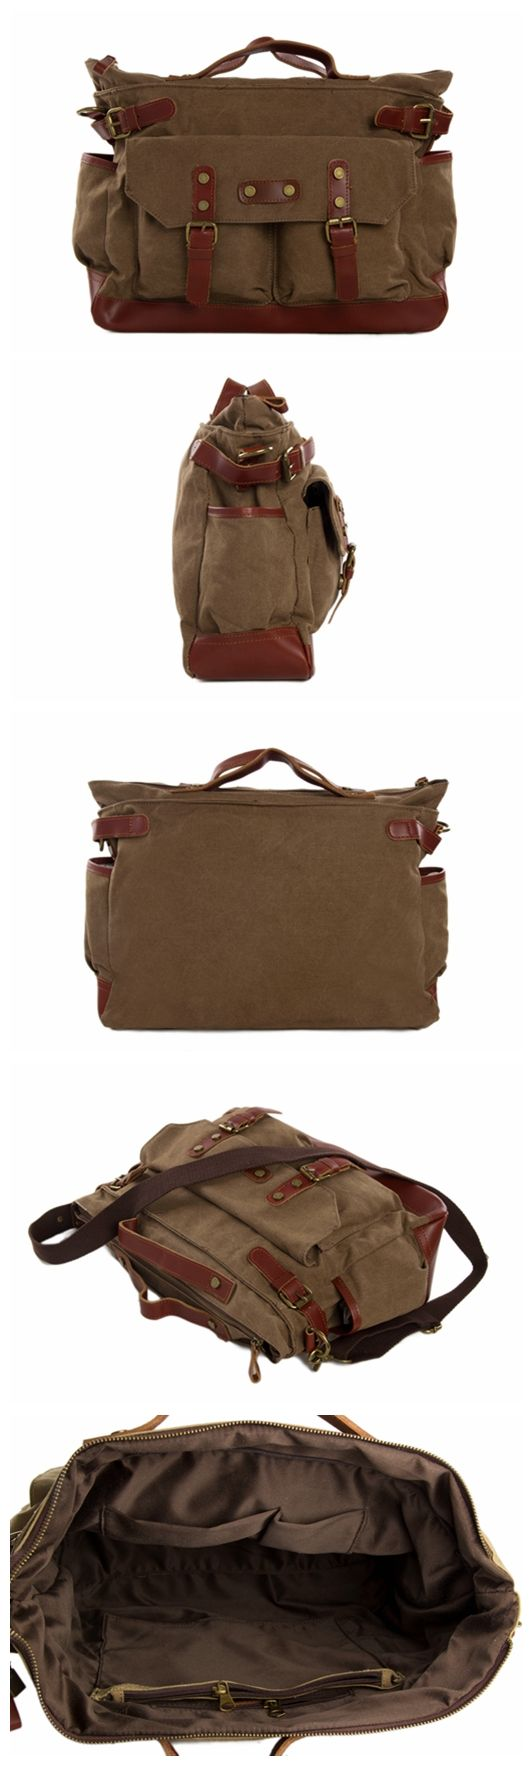 Canvas Leather Briefcase Messenger Bag, Waxed Canvas Laptop Bag Shoulder Bag